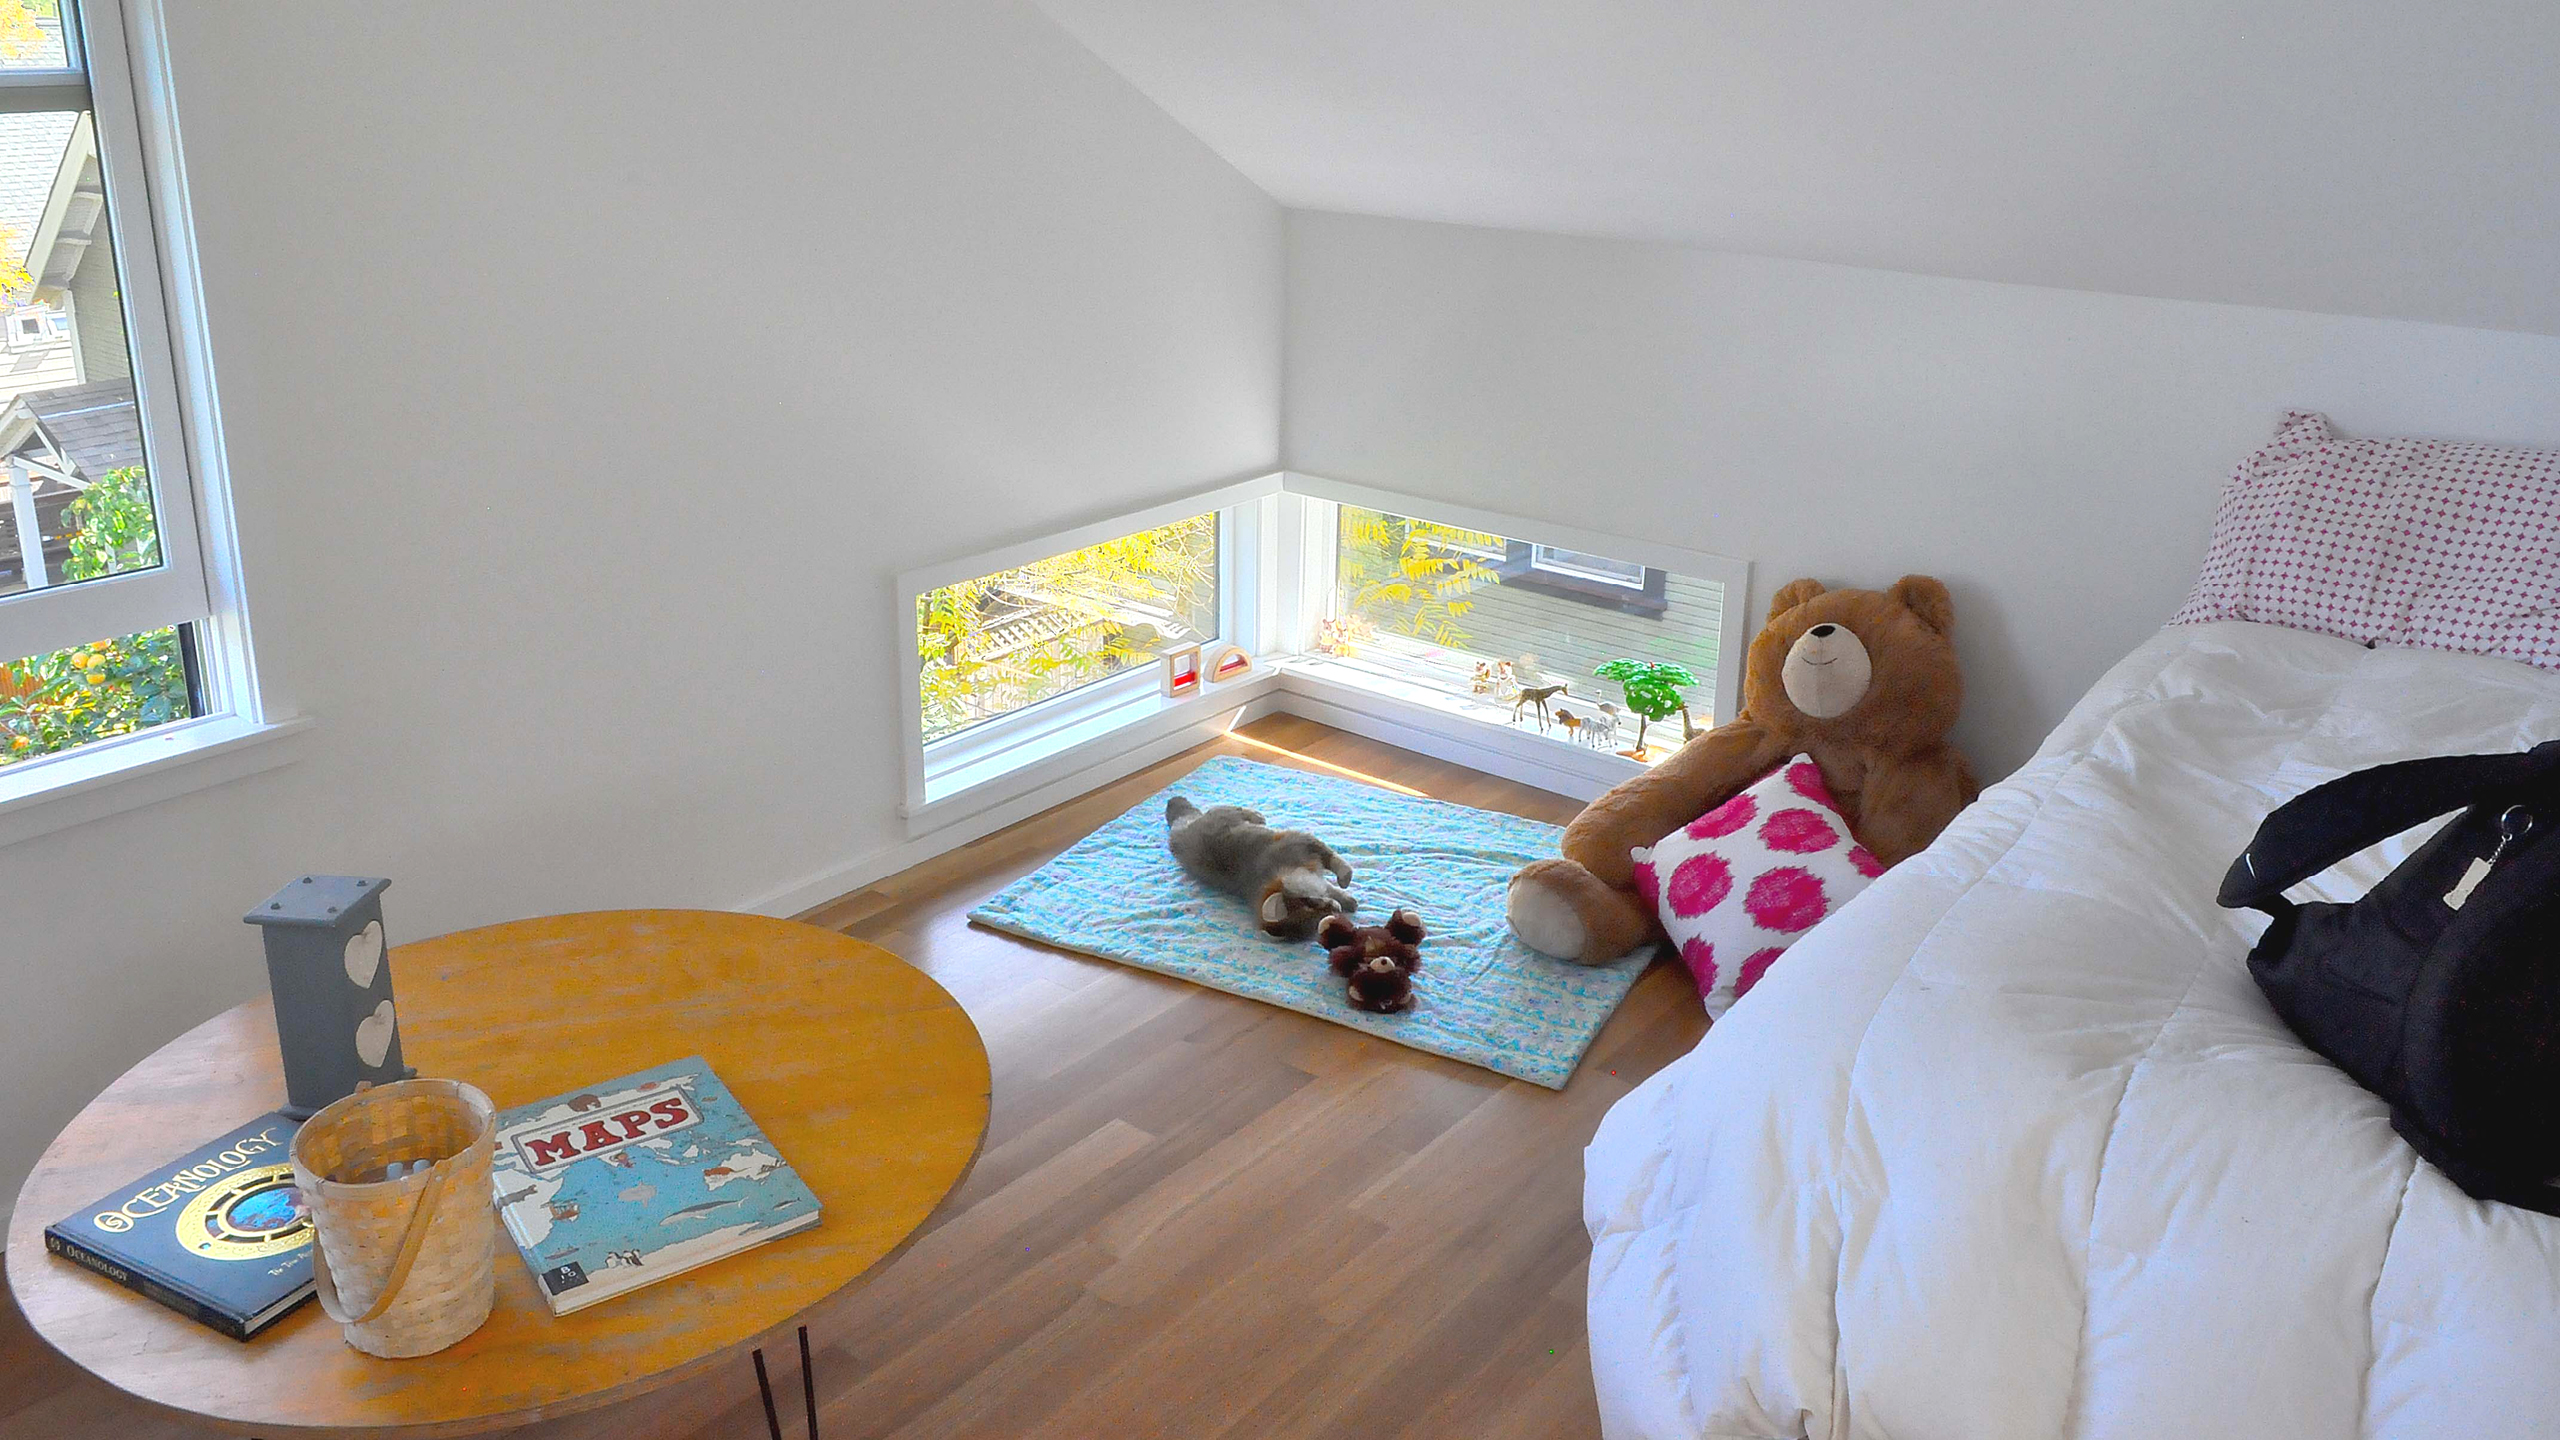 House C / image 18 / House C design by OFFICE 52 Architecture, peek-a-boo windows